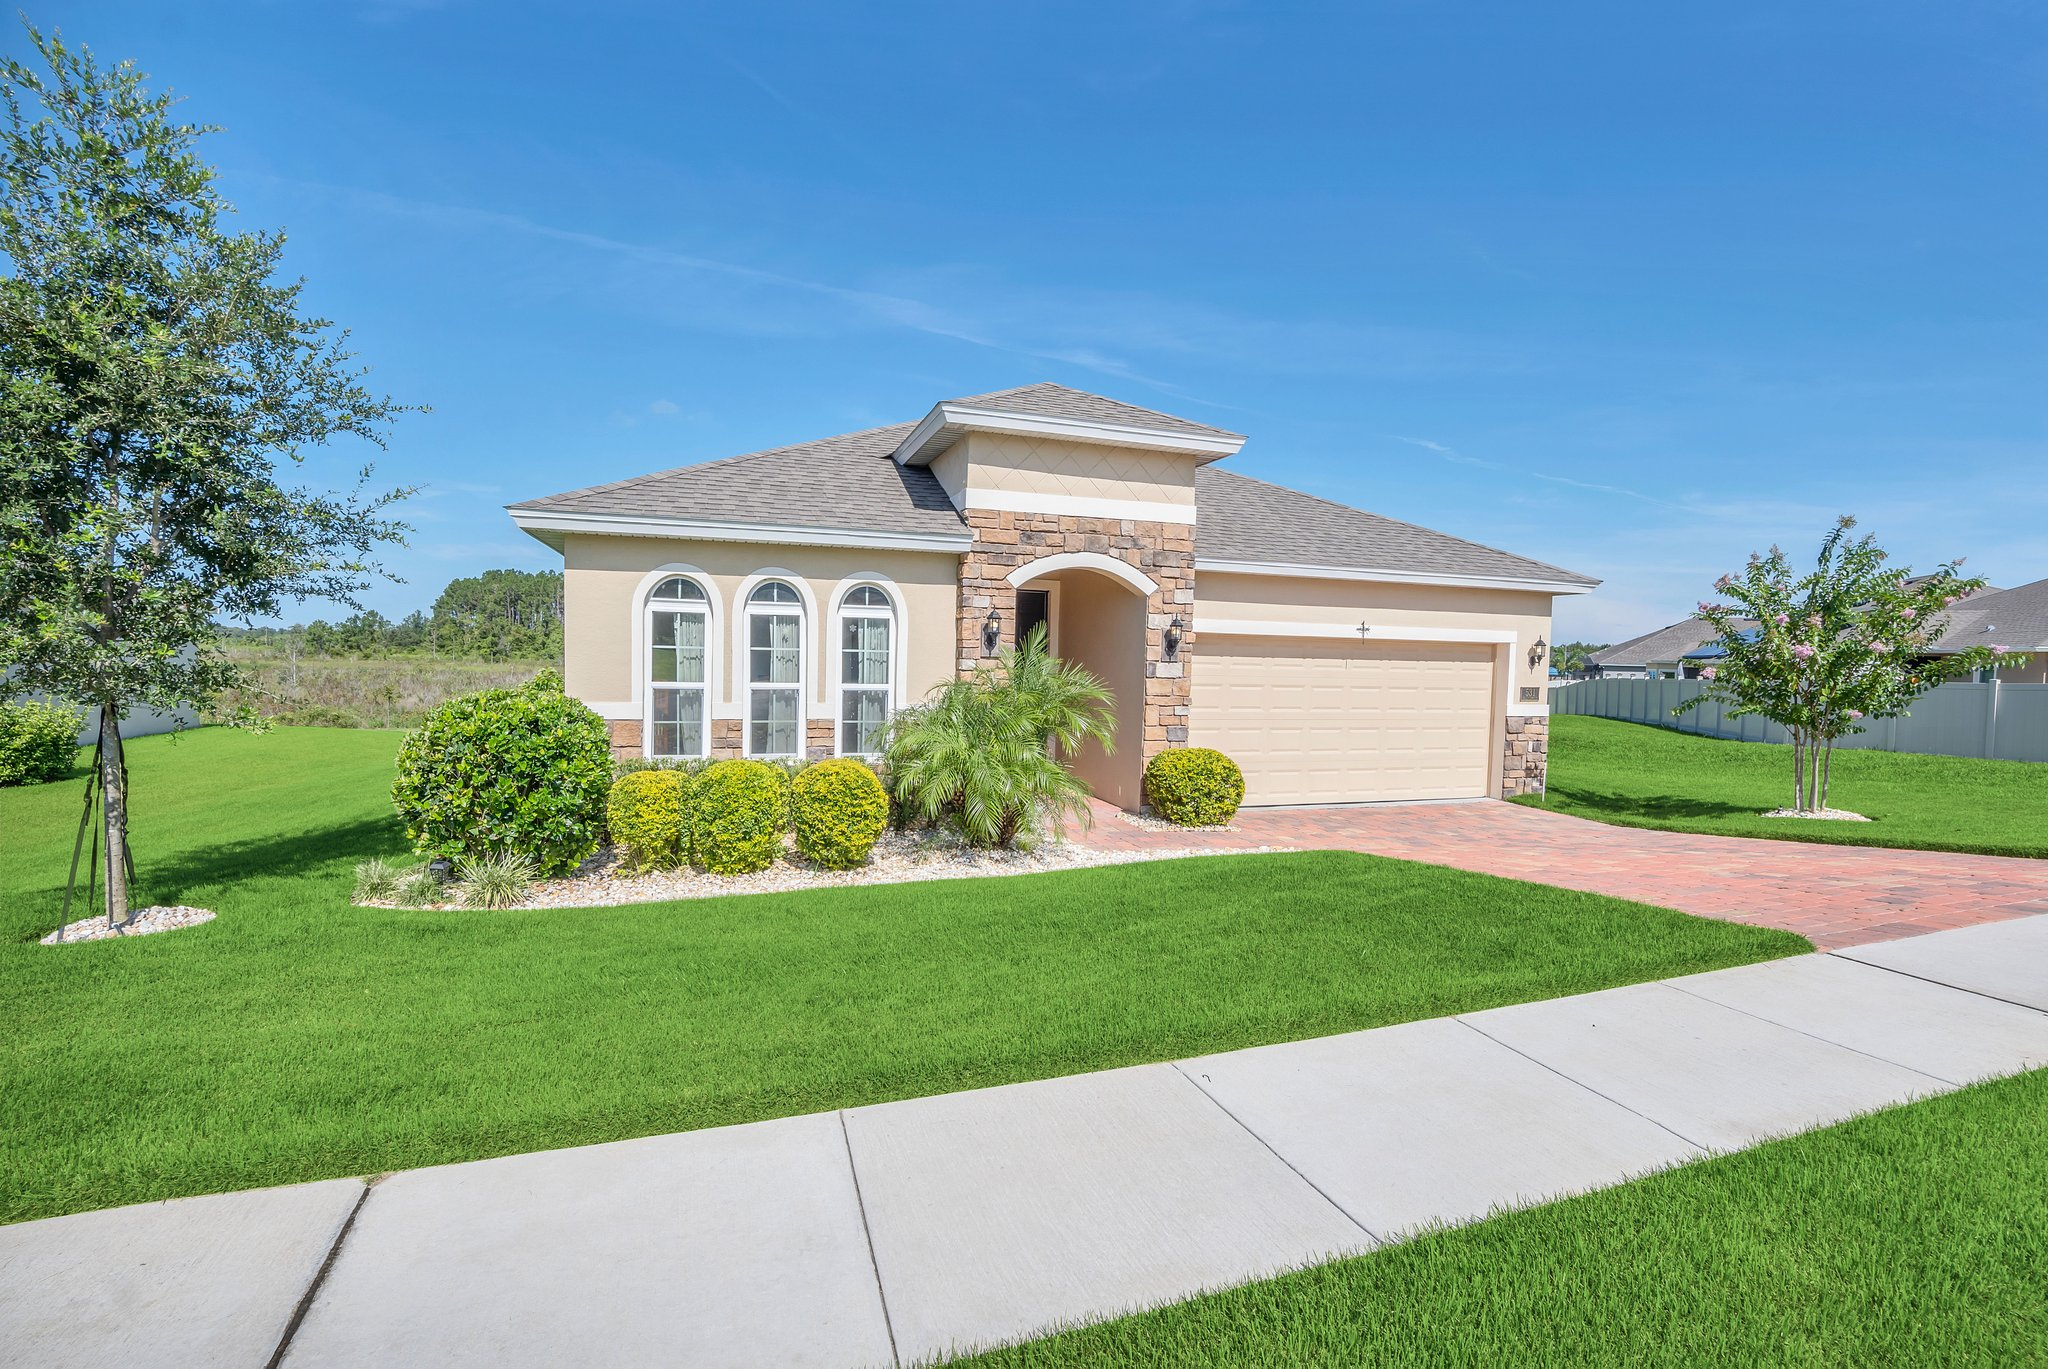 531 Bellissimo Pl, Howey-In-The-Hills, FL 34737, USA Photo 4